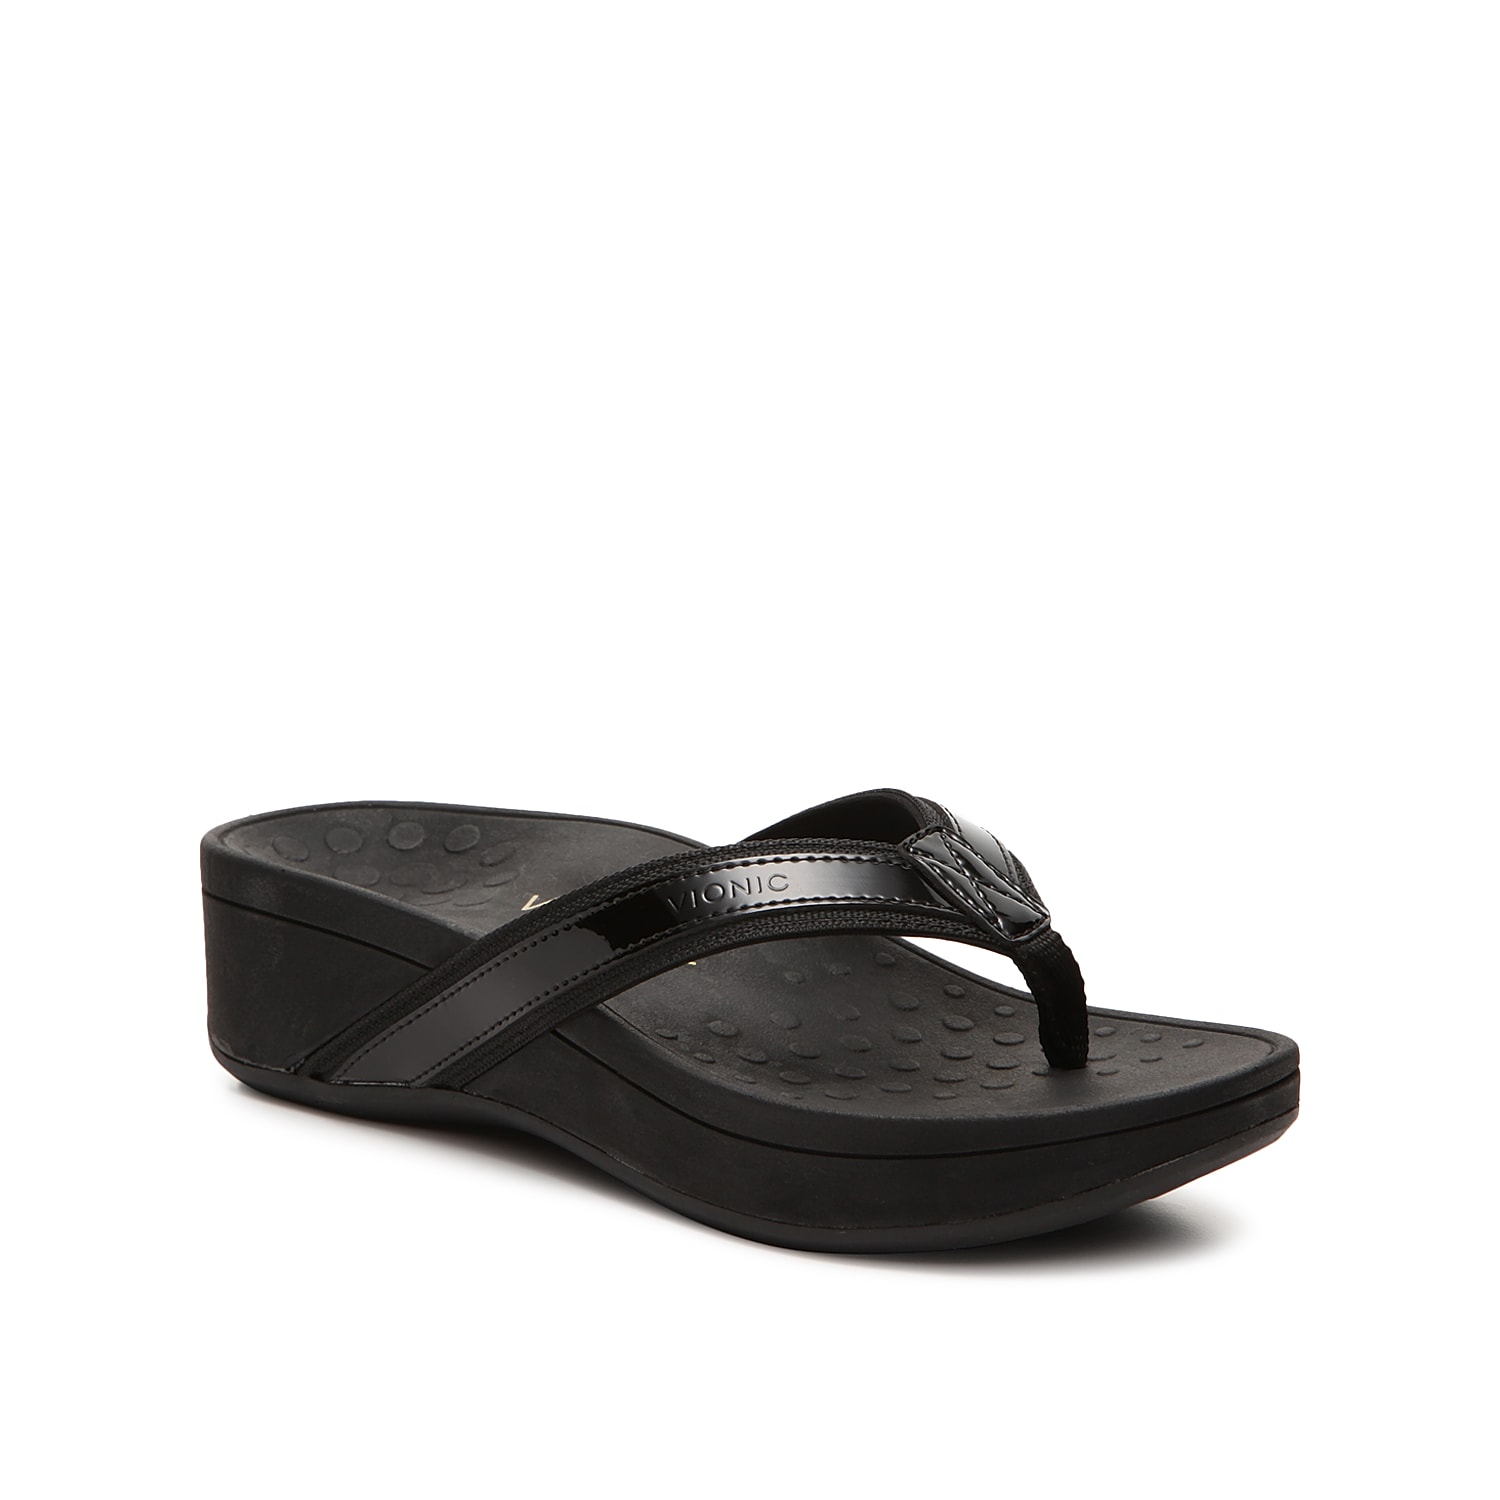 Slide into a comfortable sandal from Vionic before heading out the door. The High Tide wedges feature a podiatrist-designed footbed and sole that offer support in all the right places.